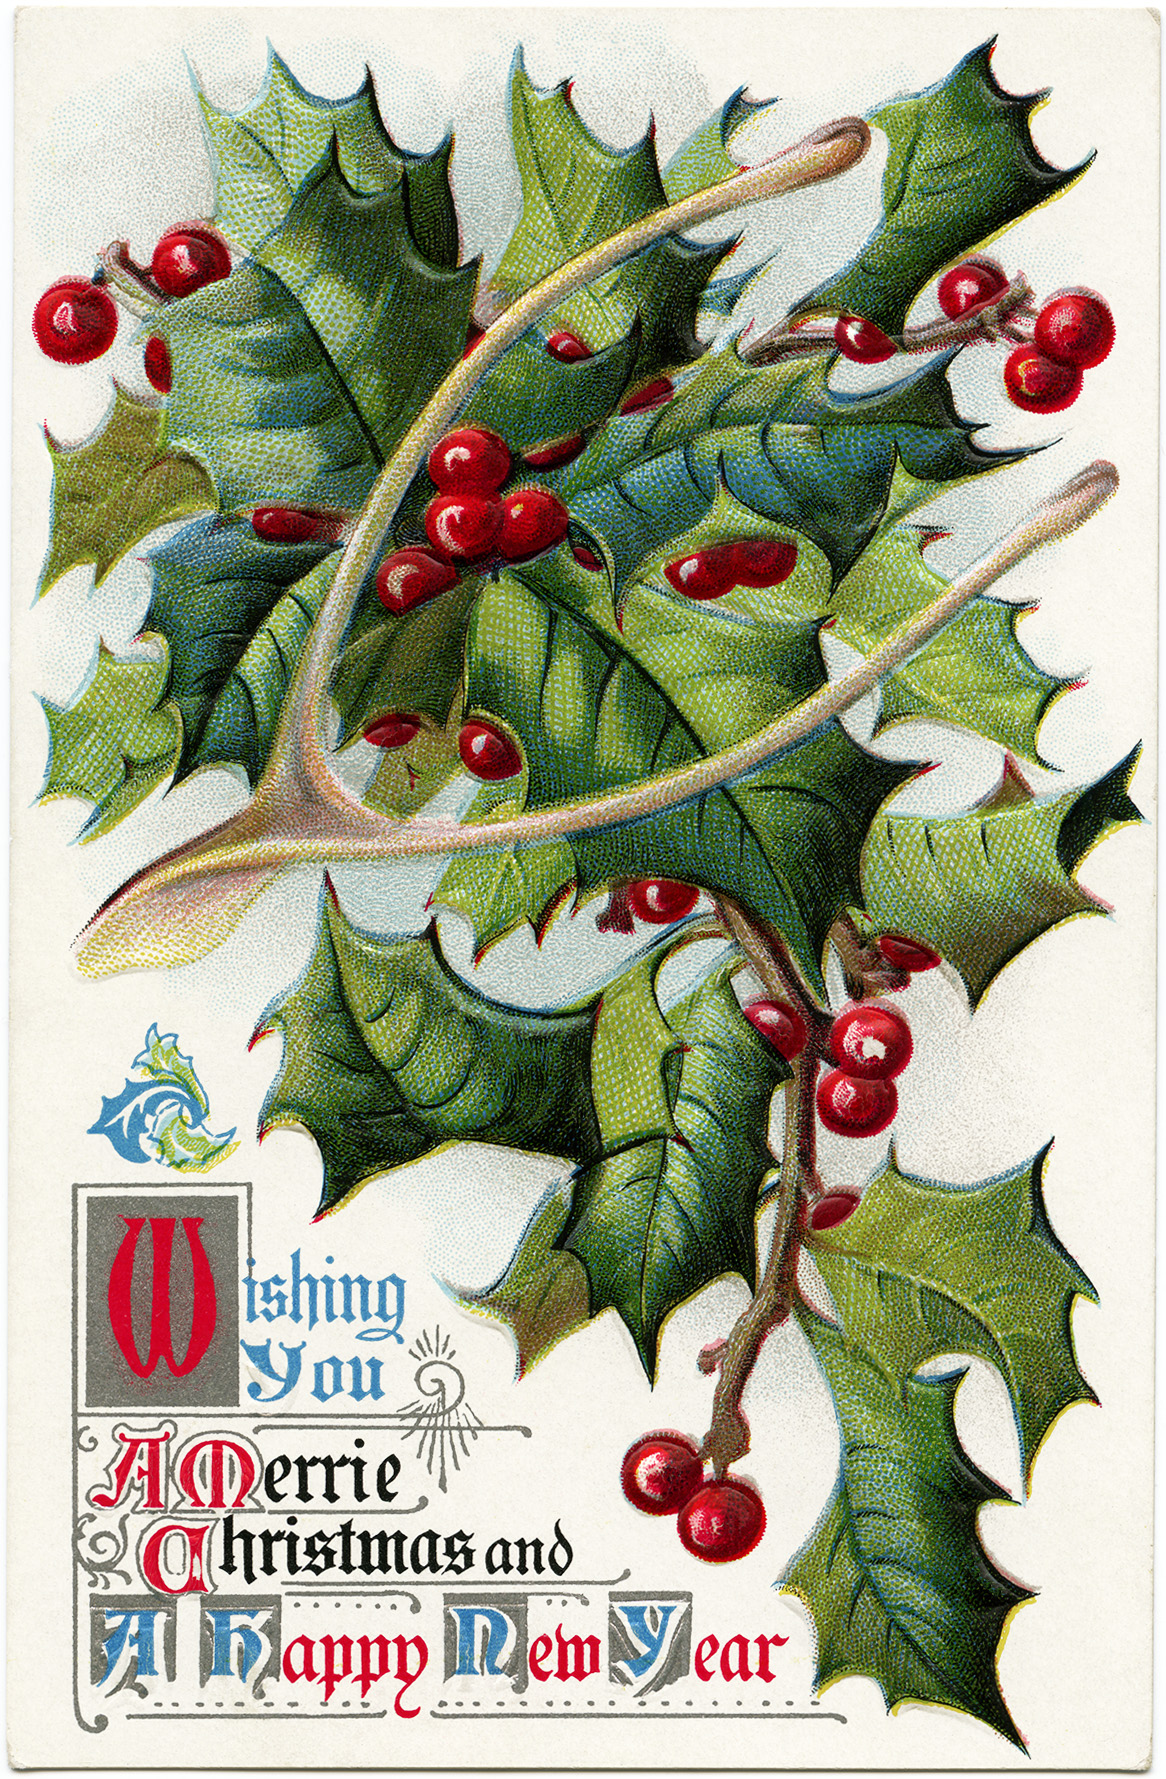 vintage christmas postcard, branch holly and berries, old fashioned wishbone postcard, merrie christmas greeting, antique holiday card image